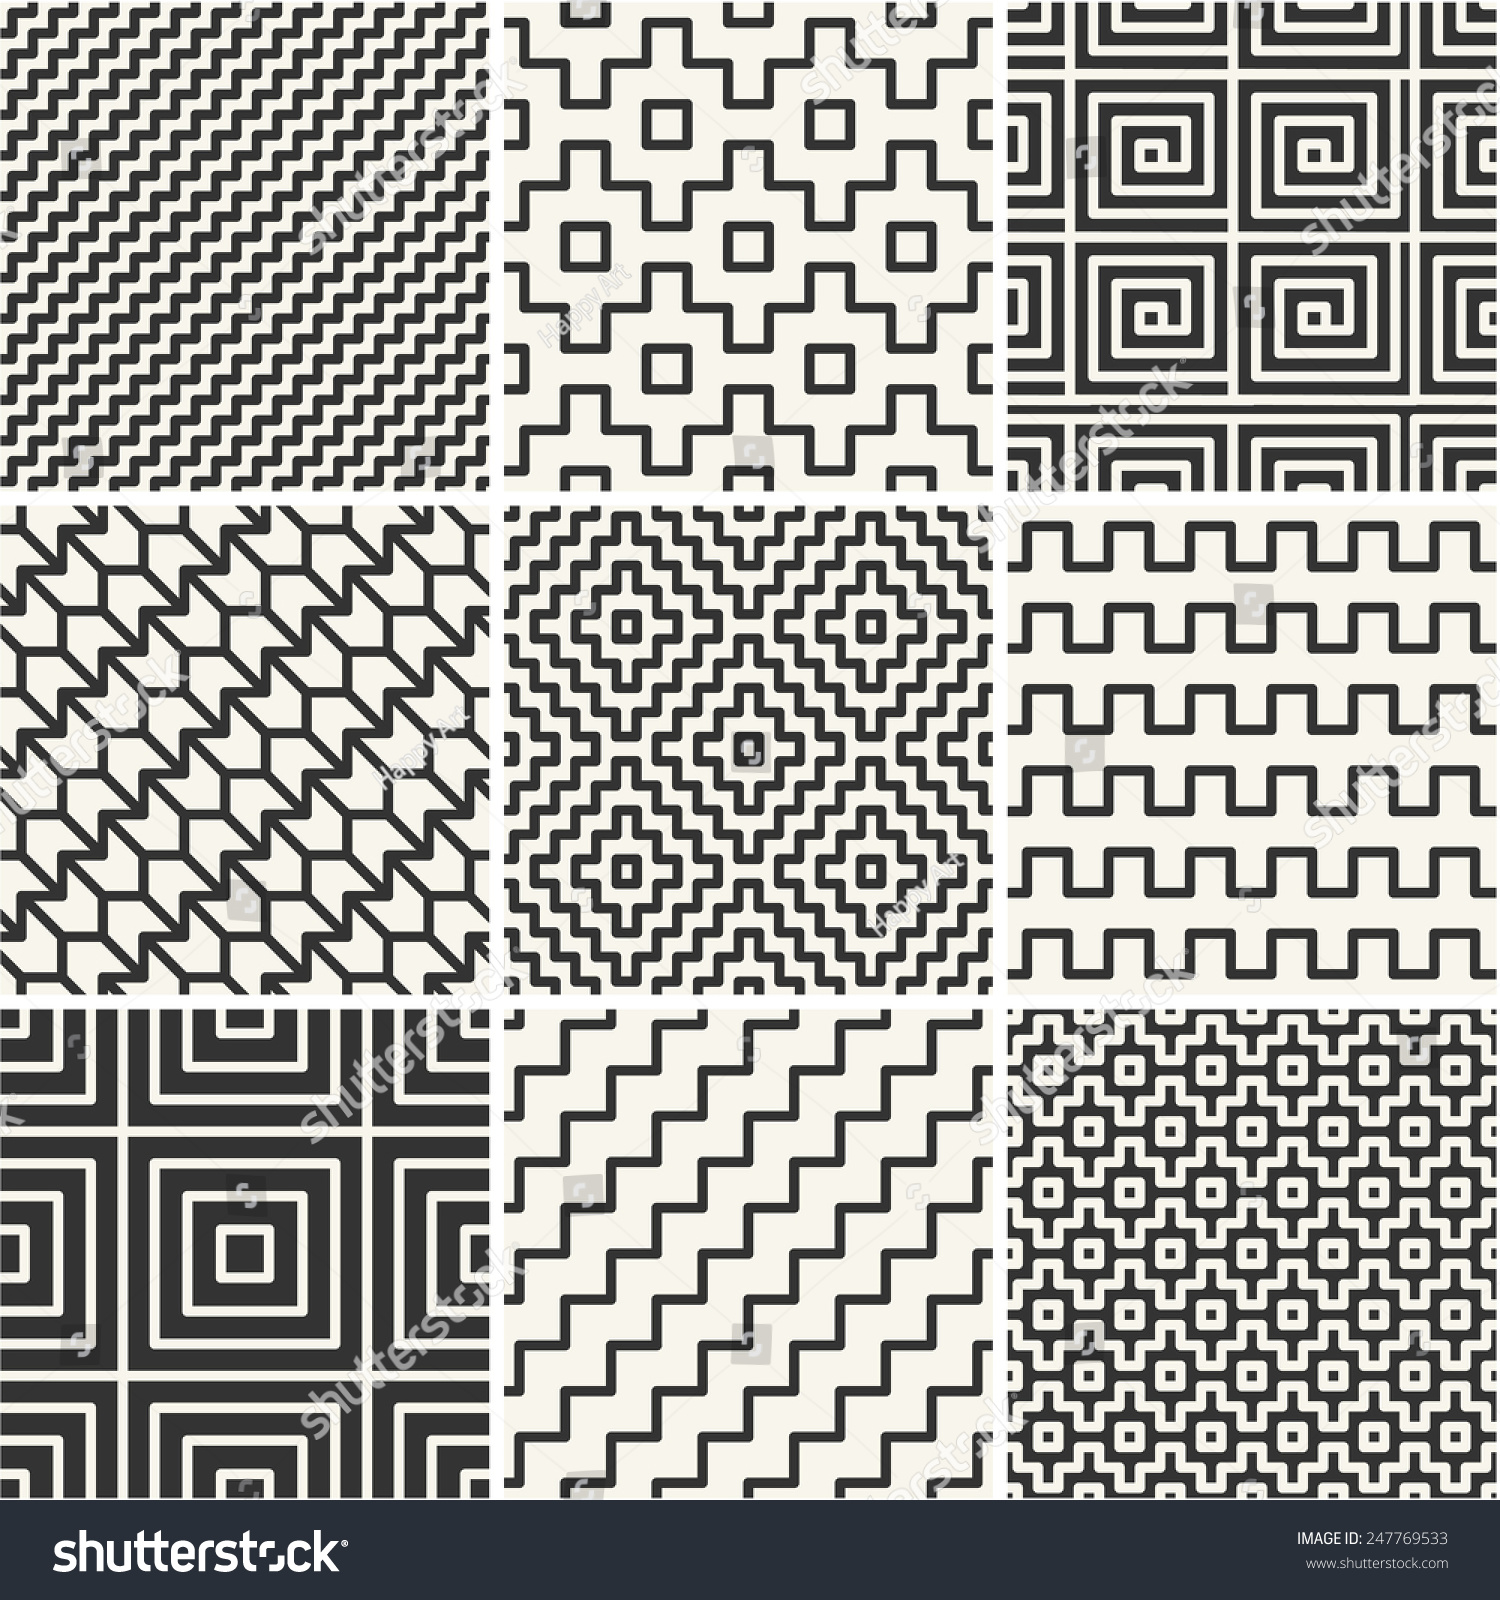 Simple Line Designs Patterns : Vector mono line backgrounds simple patterns stock